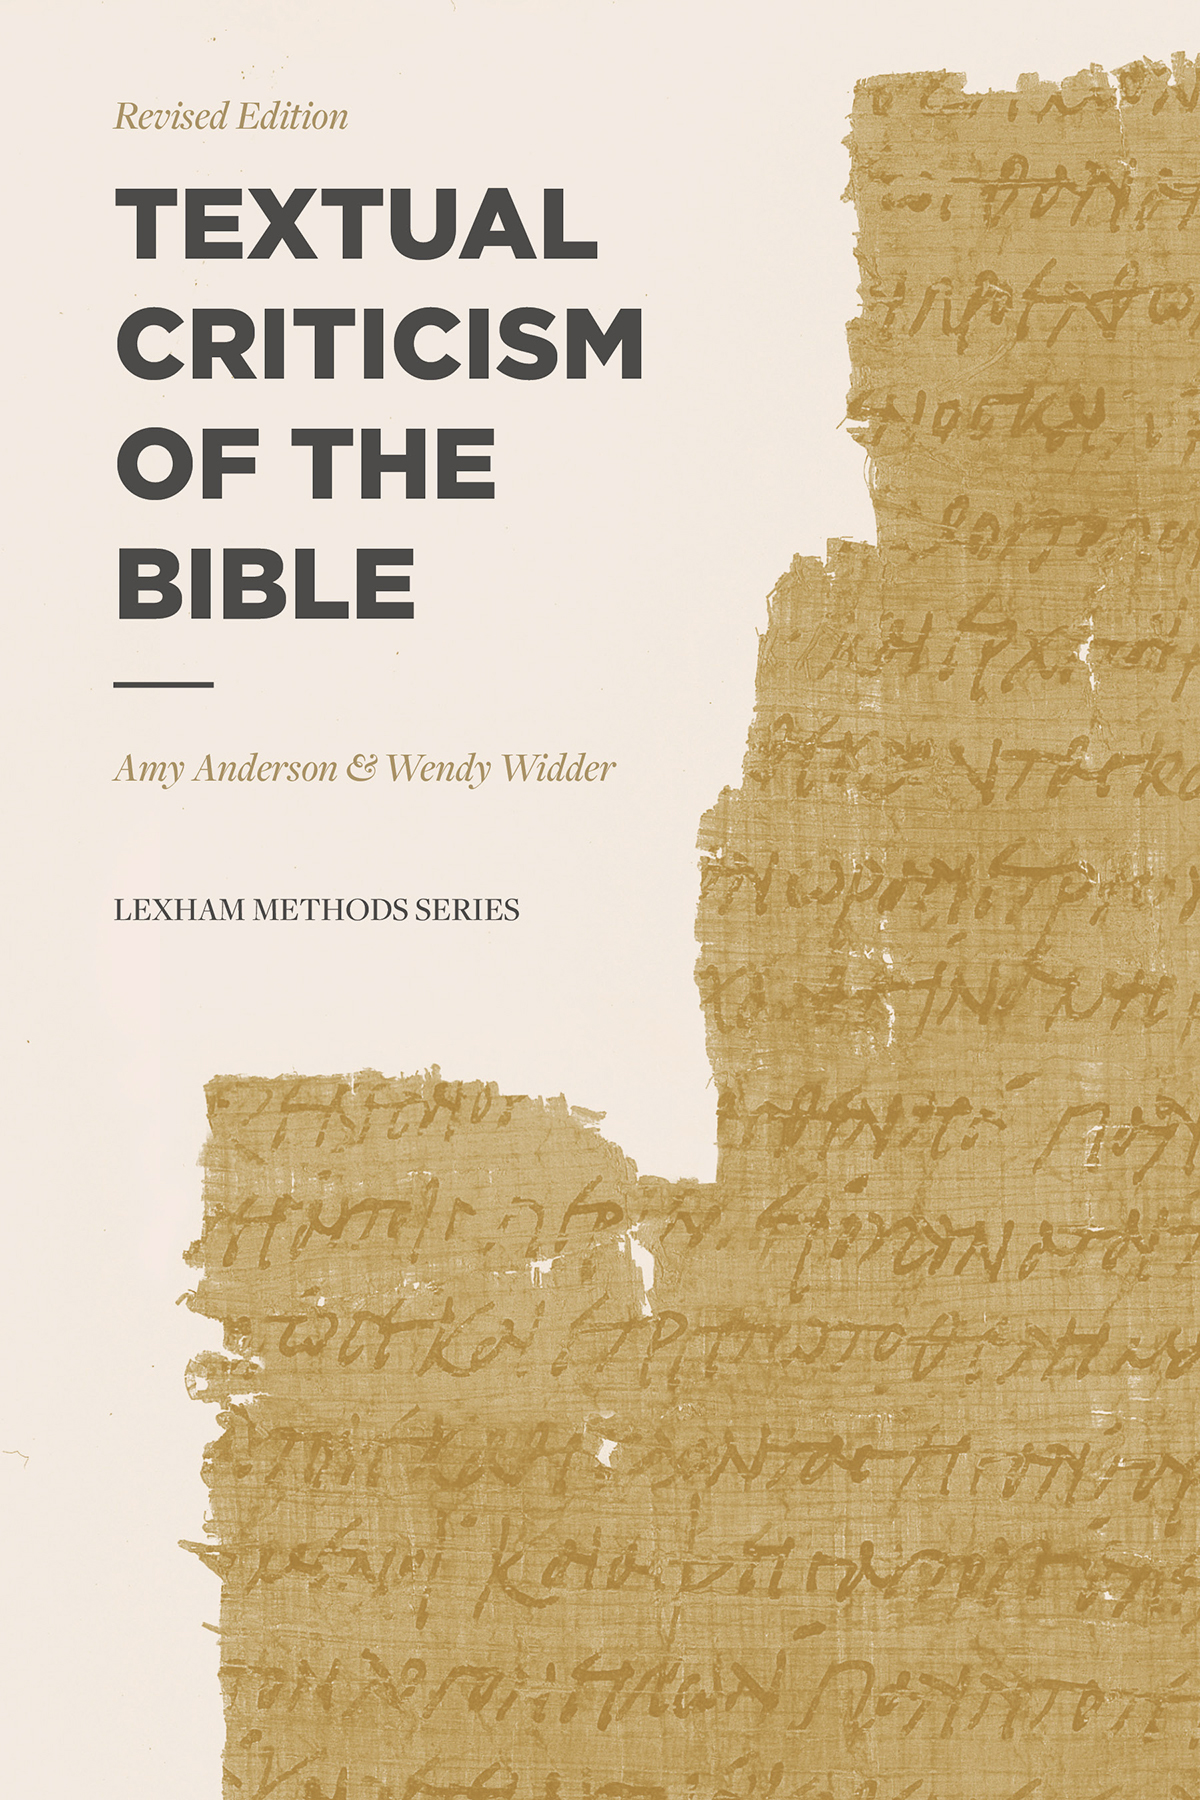 Lexham Methods Series: Textual Criticism of the Bible: Revised Edition